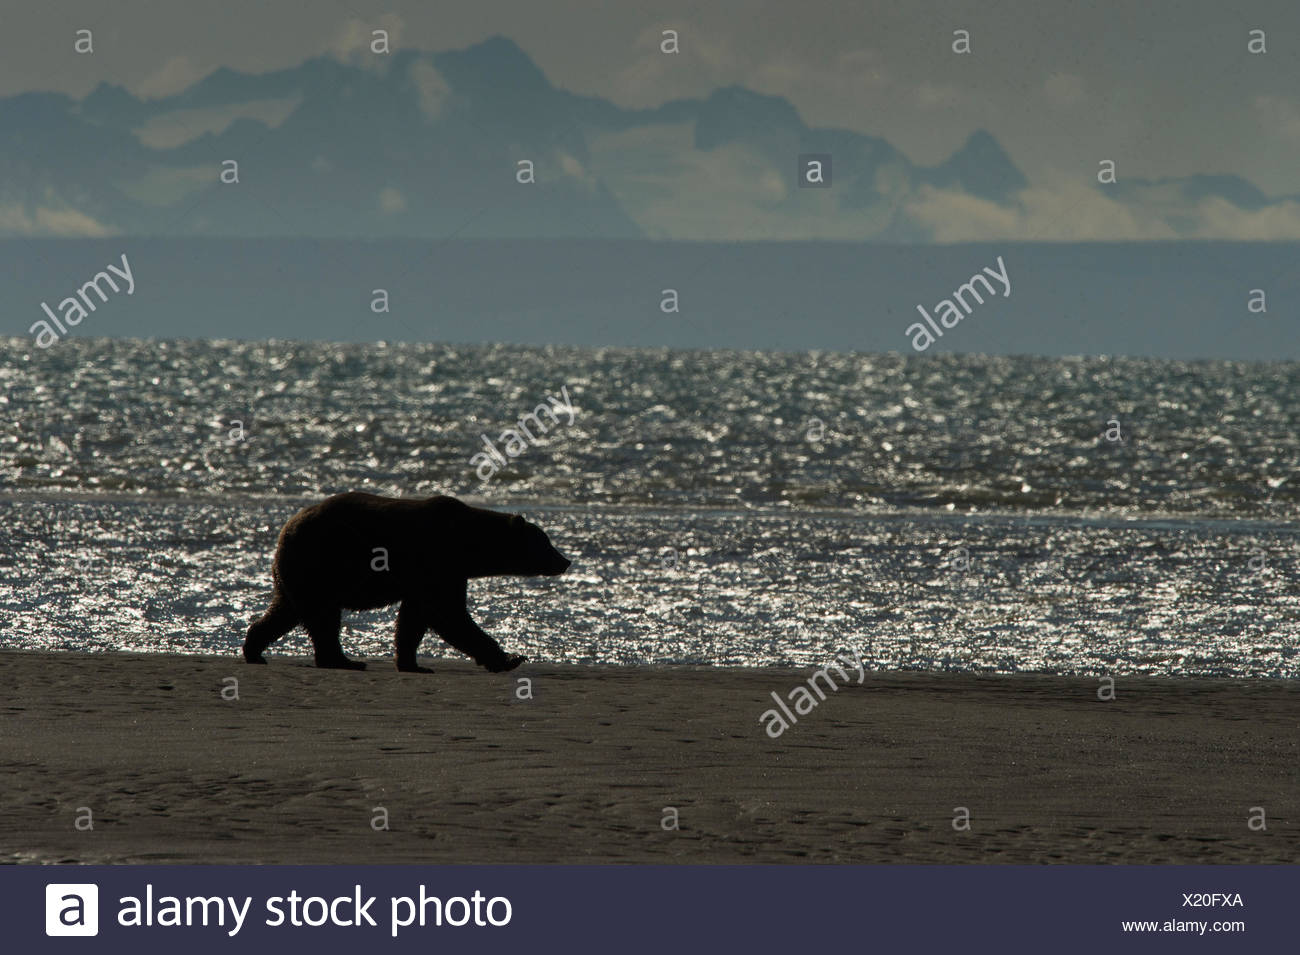 Silhouette of a Brown Bear, Ursus arctos, walking near the water at Silver Salmon Creek Lodge in Lake Clark National Park. - Stock Image